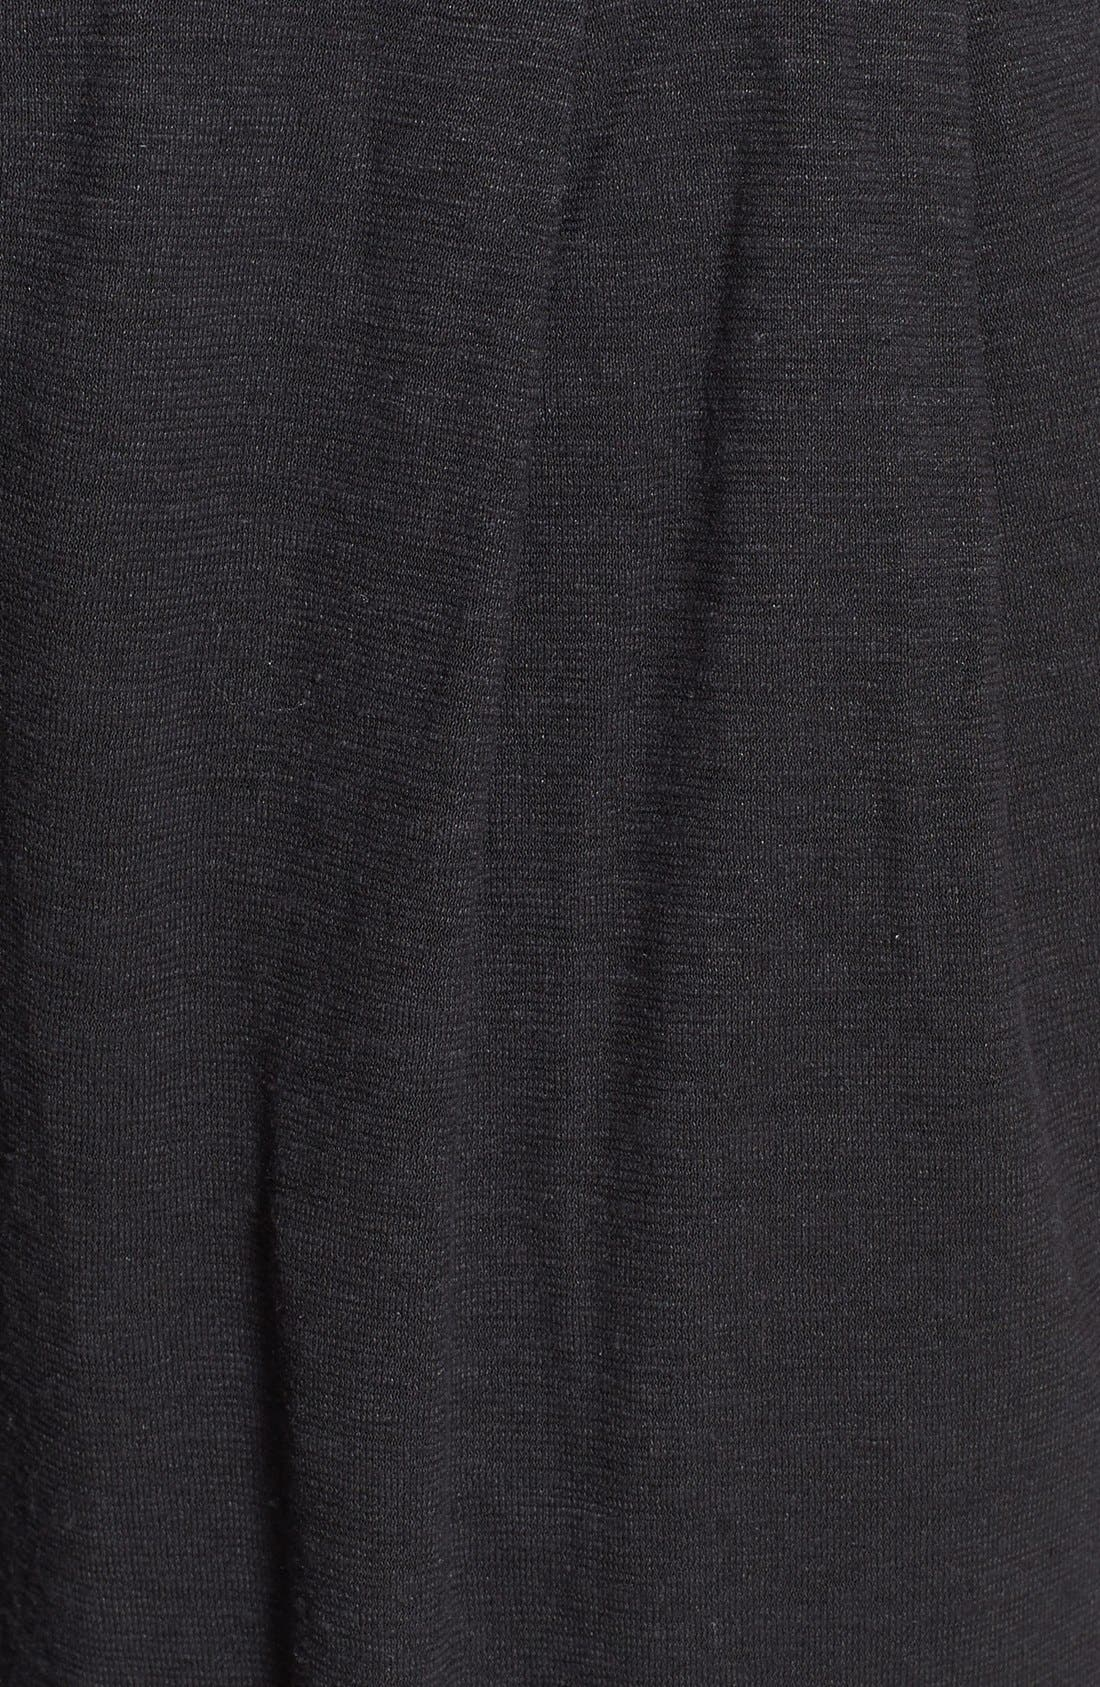 Alternate Image 3  - Eileen Fisher Pleat Front Knit Ankle Pants (Regular & Petite)